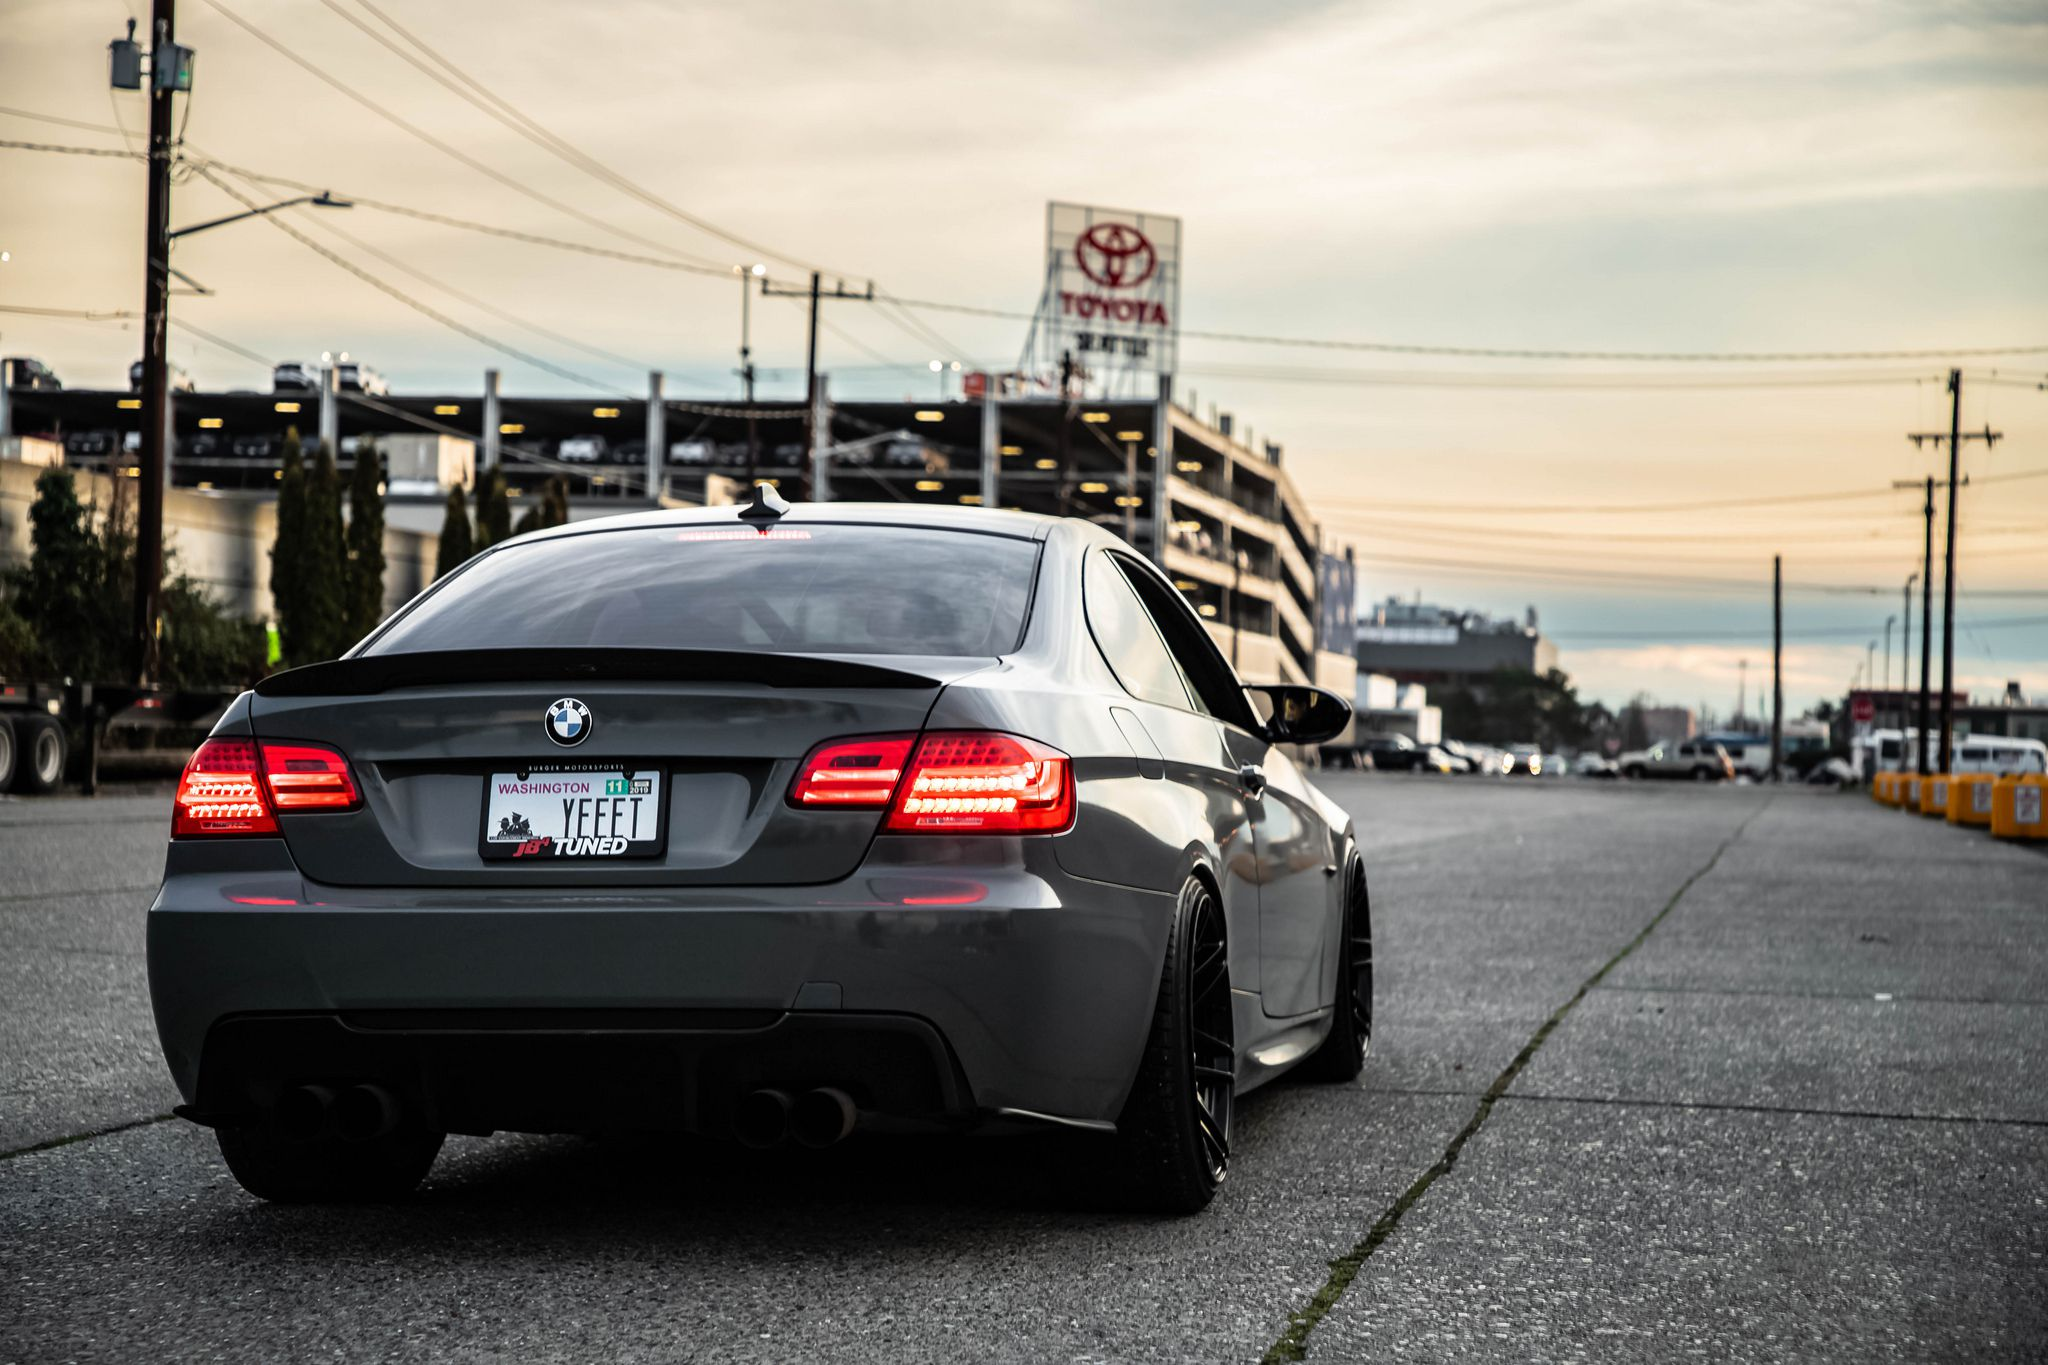 BMW M3 E90 - black colour, turned taillights